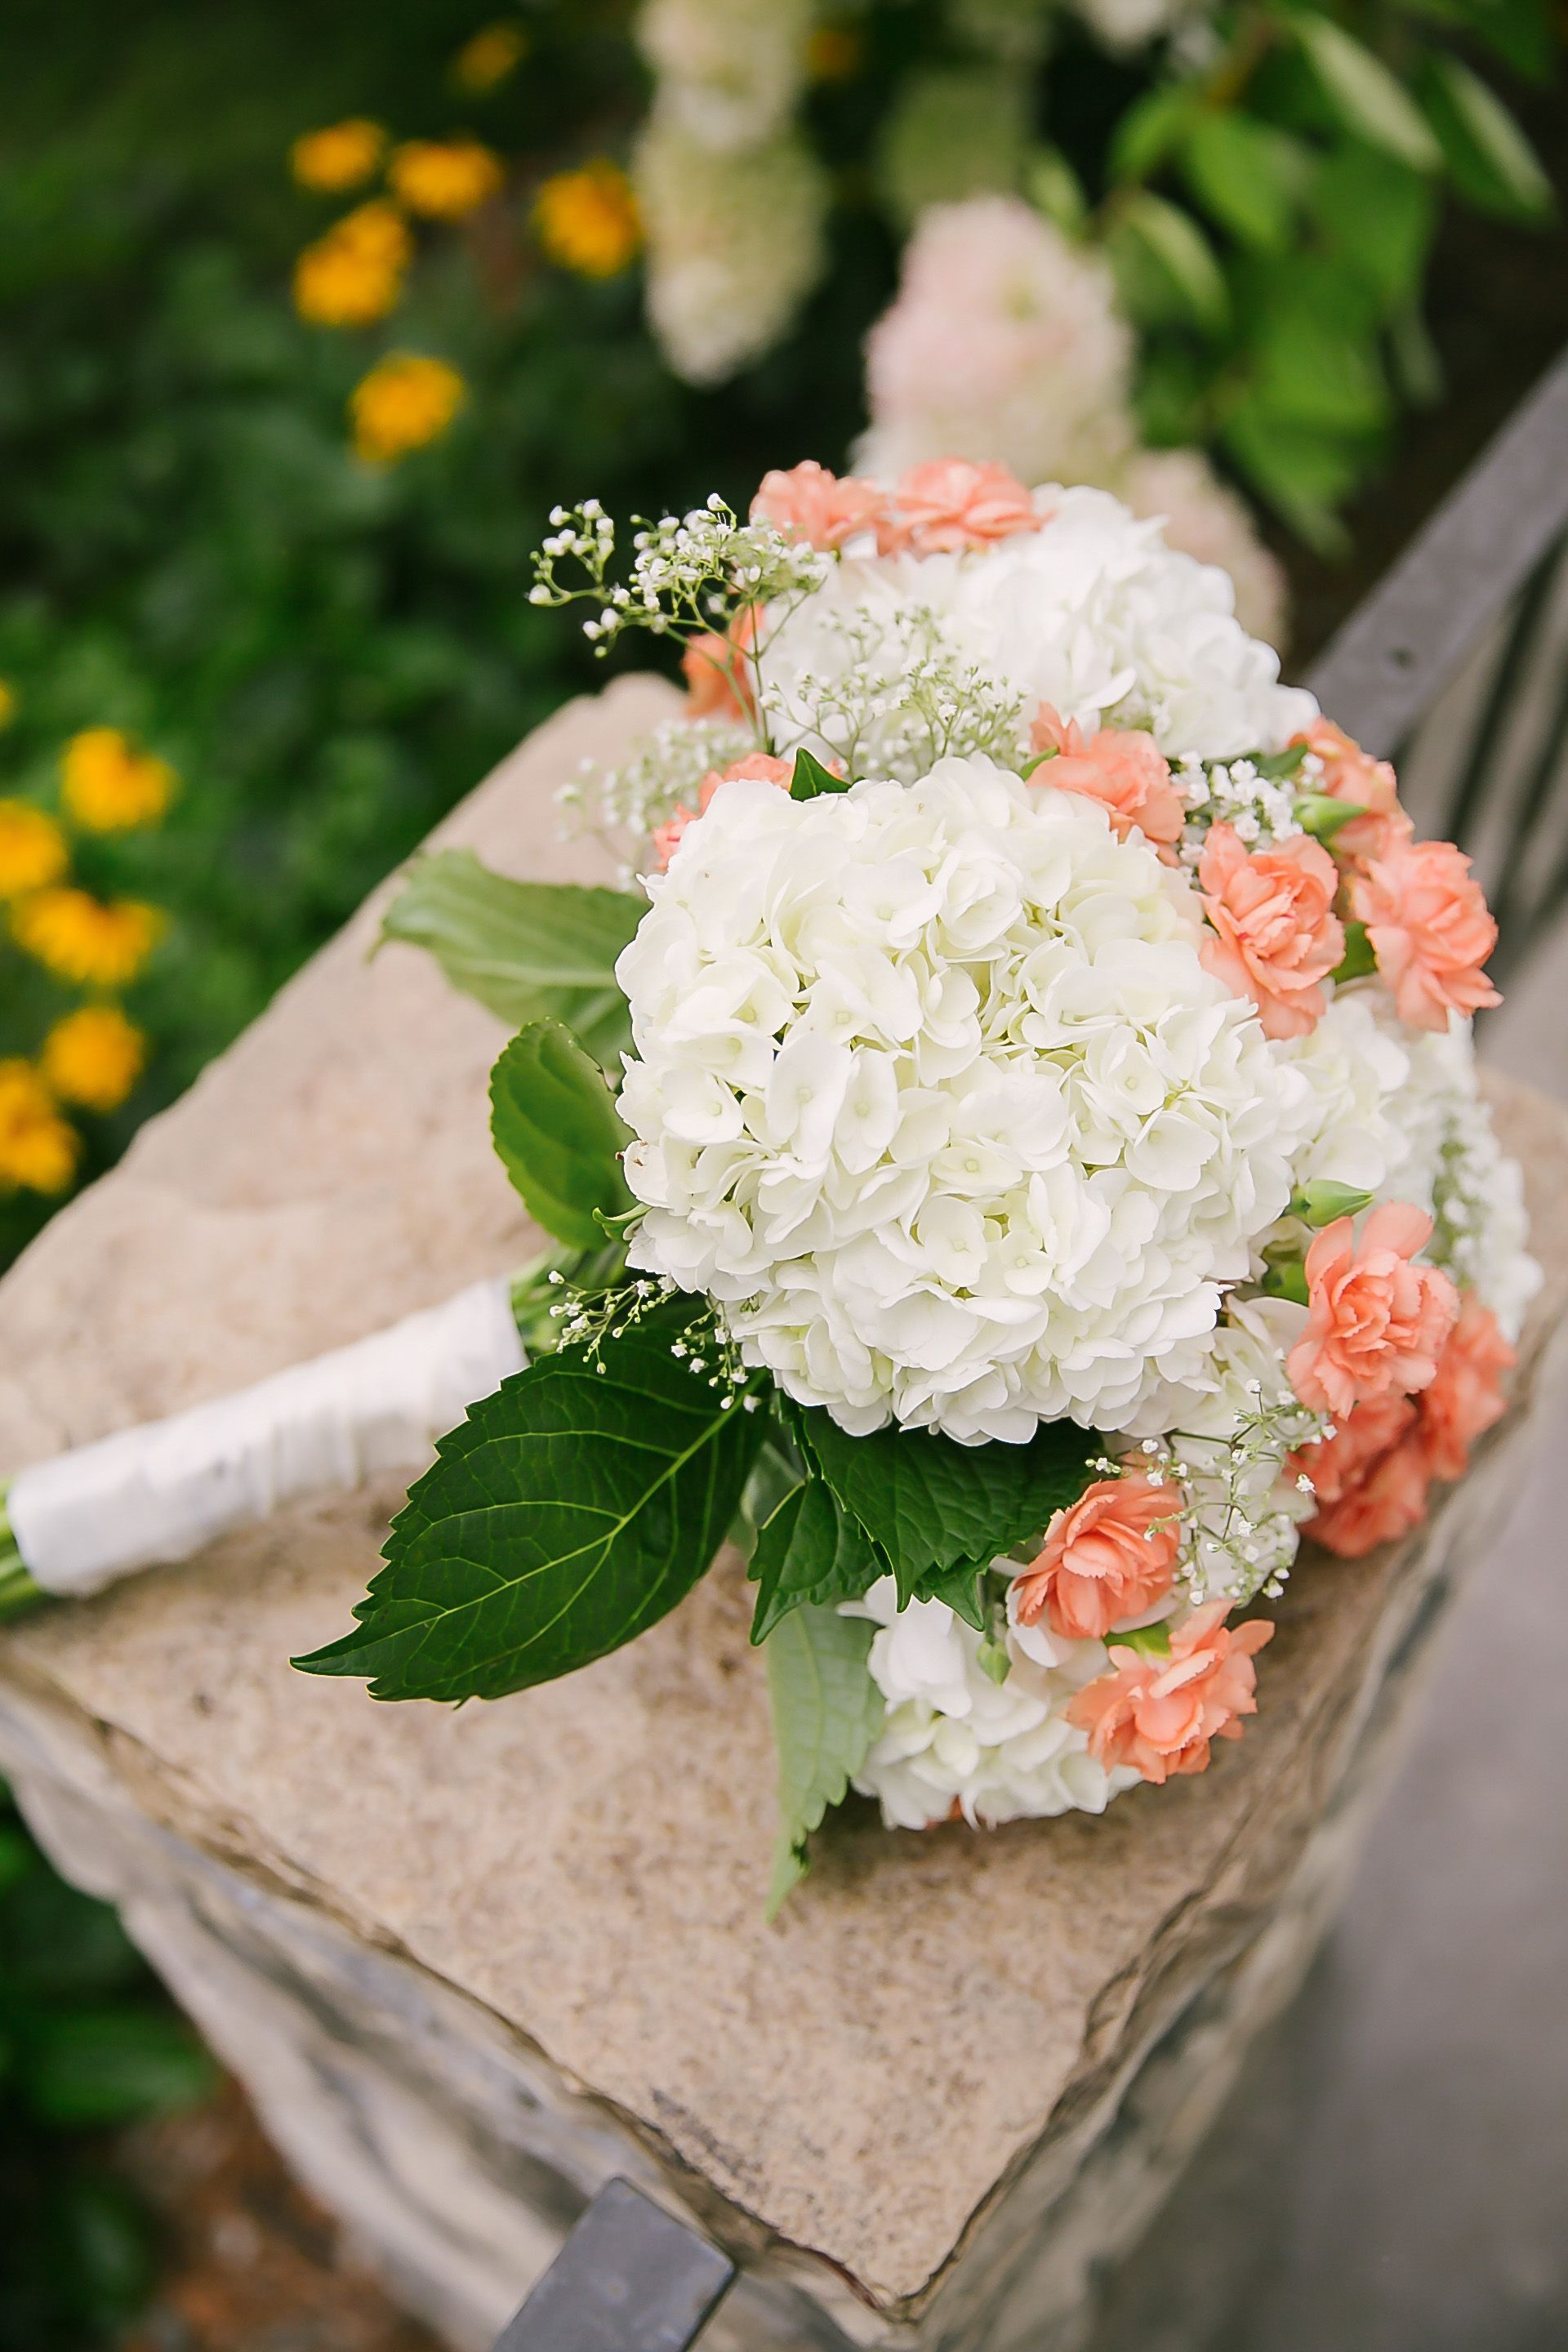 White Hydrangea And Peach Carnation Bridal Bouquet Hydrangea Bouquet Wedding Flower Bouquet Wedding Hydrangeas Wedding